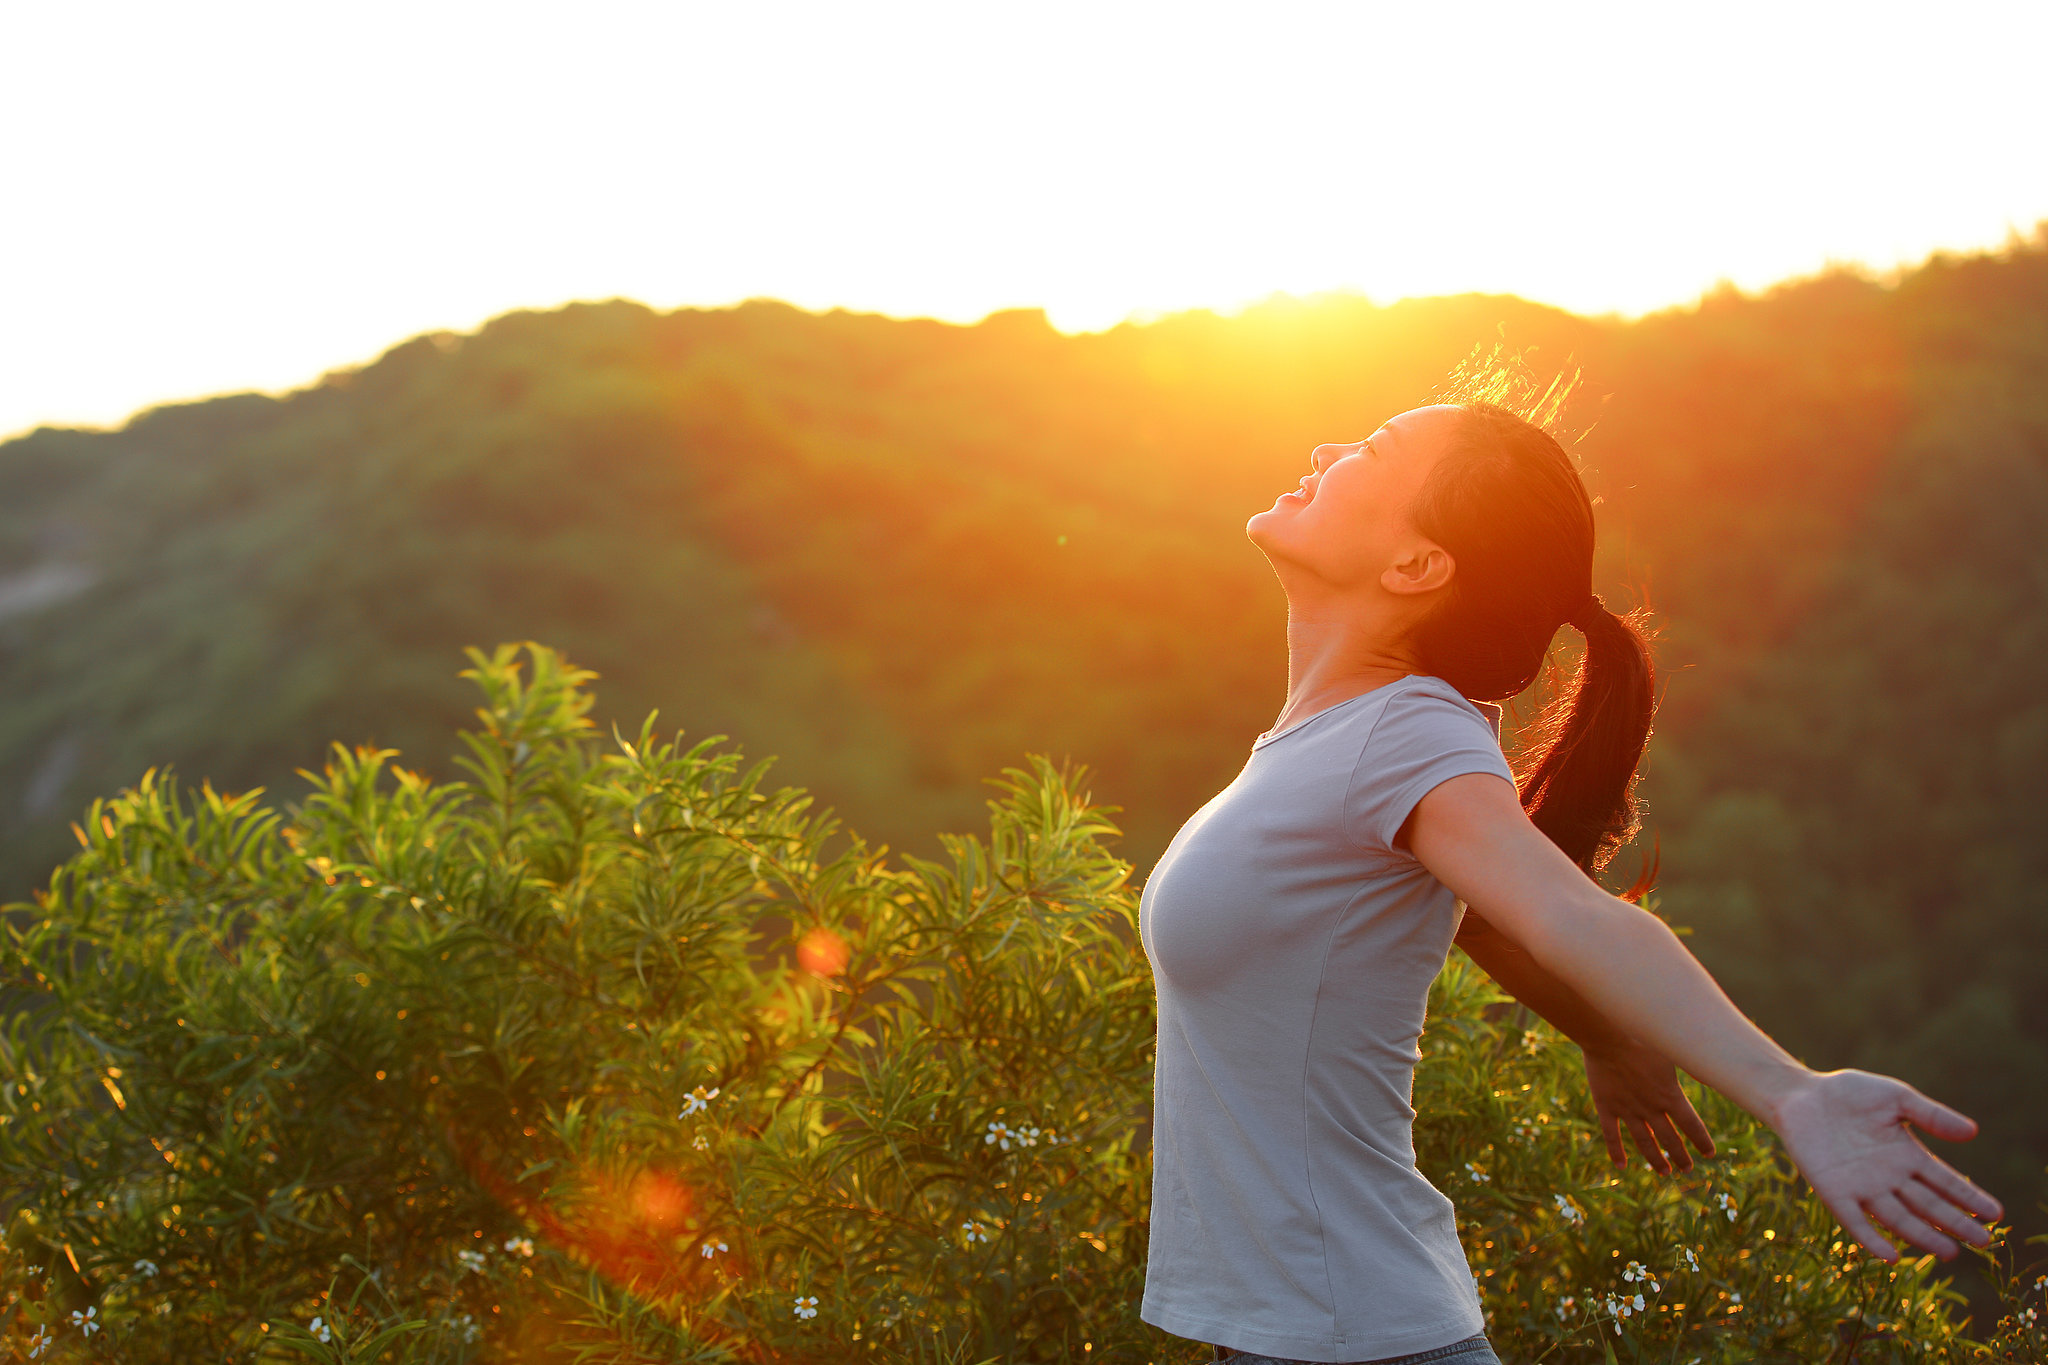 Follow These 7 Tips For A Healthy Lifestyle